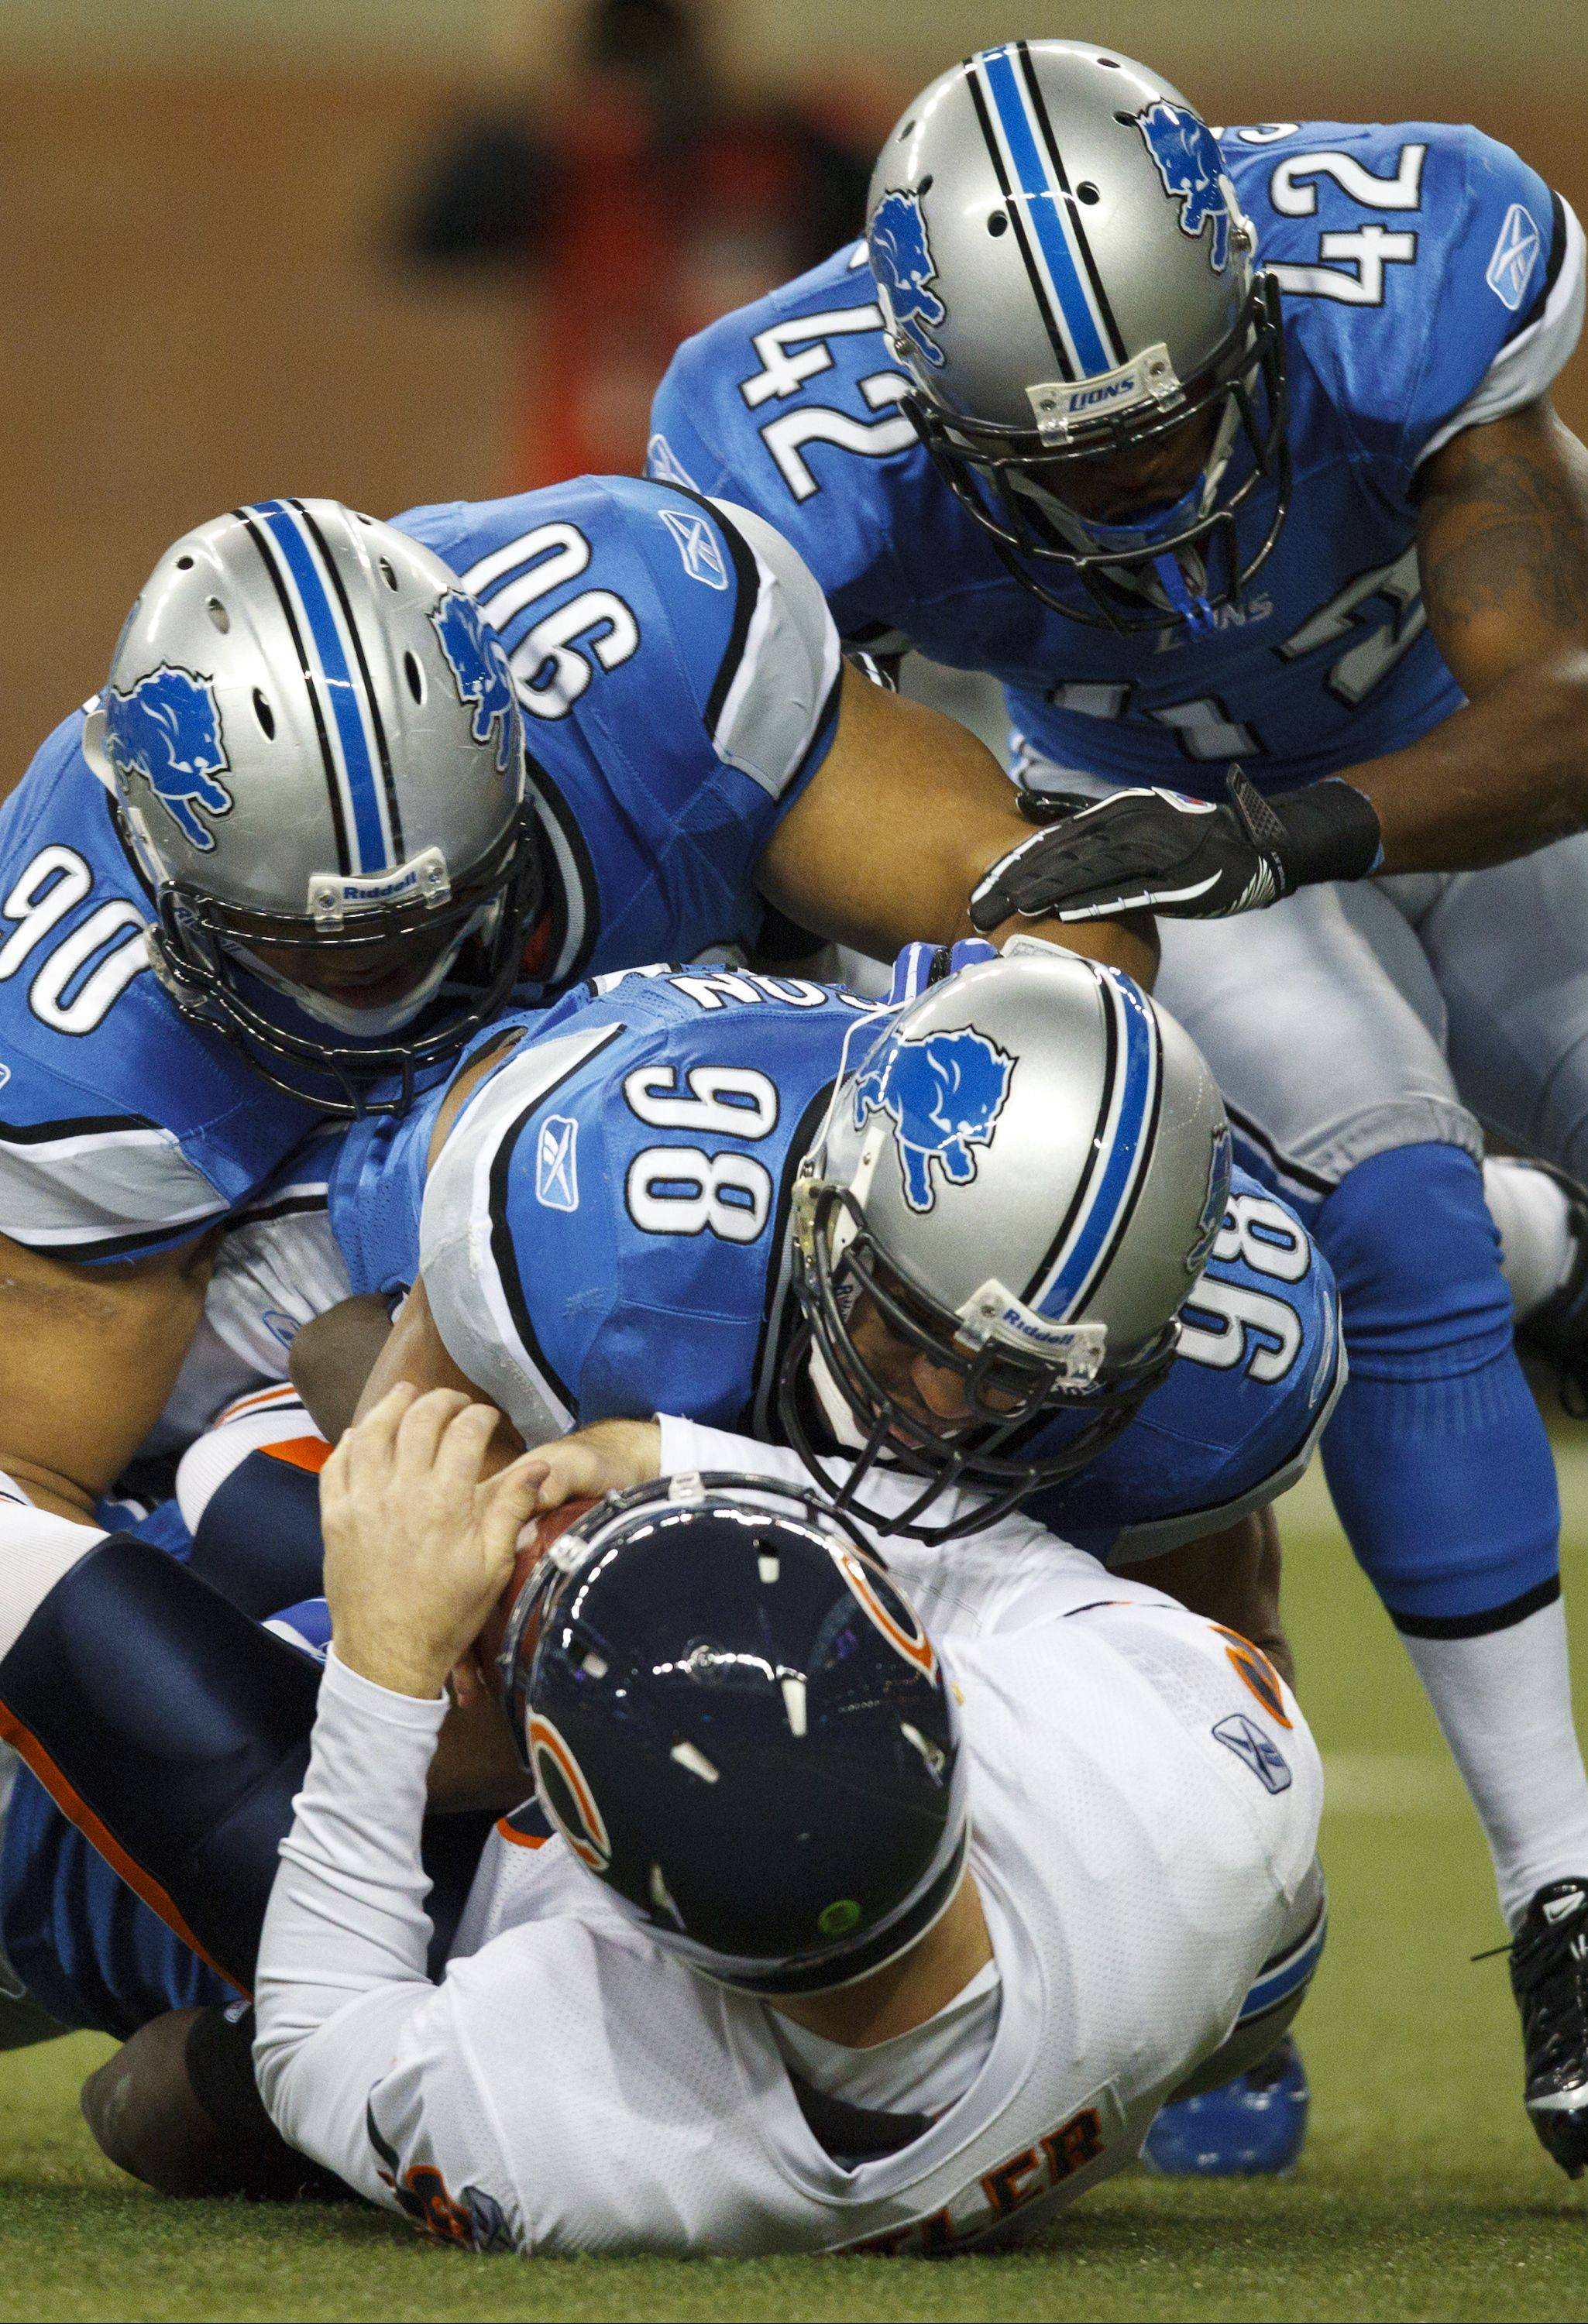 Detroit Lions defensive tackle Ndamukong Suh (90) and linebacker Julian Peterson (98) can make things difficult for quarterbacks, as Bears QB Jay Cutler found out last December.